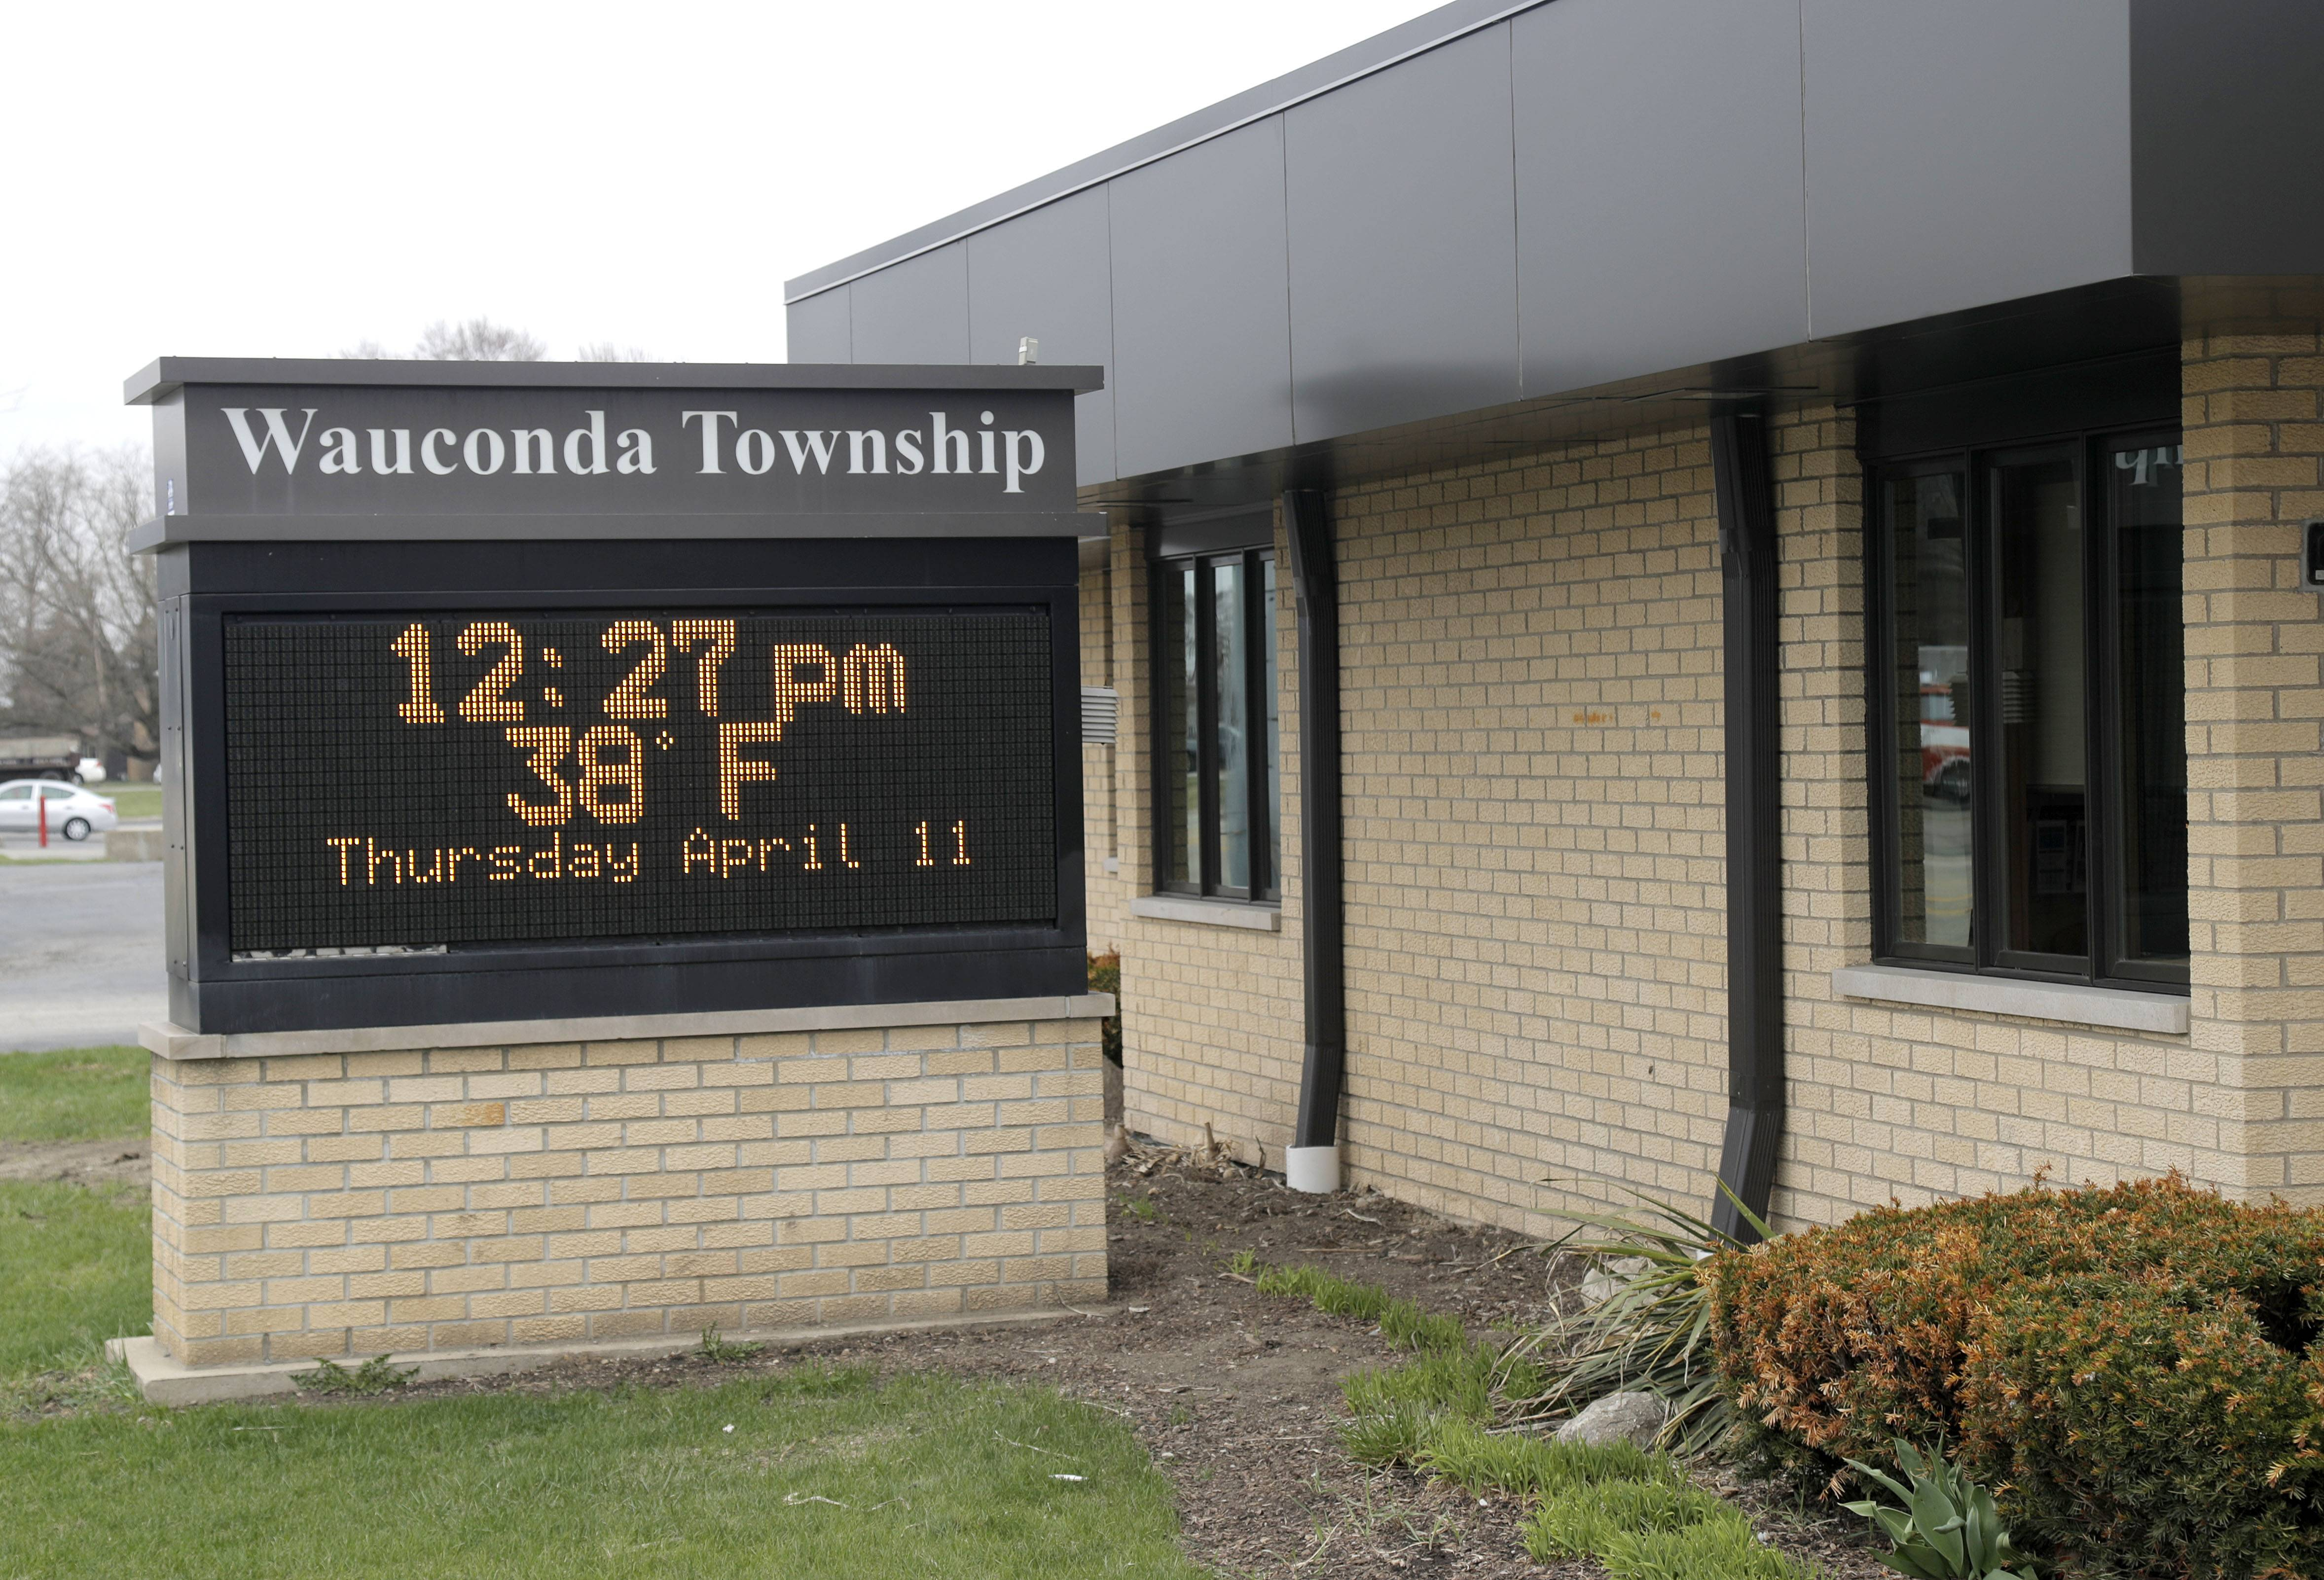 Two former Wauconda Township highway department employees have filed a lawsuit in federal court, saying they were fired as political retribution for backing the losing candidate for highway district commissioner in 2017.